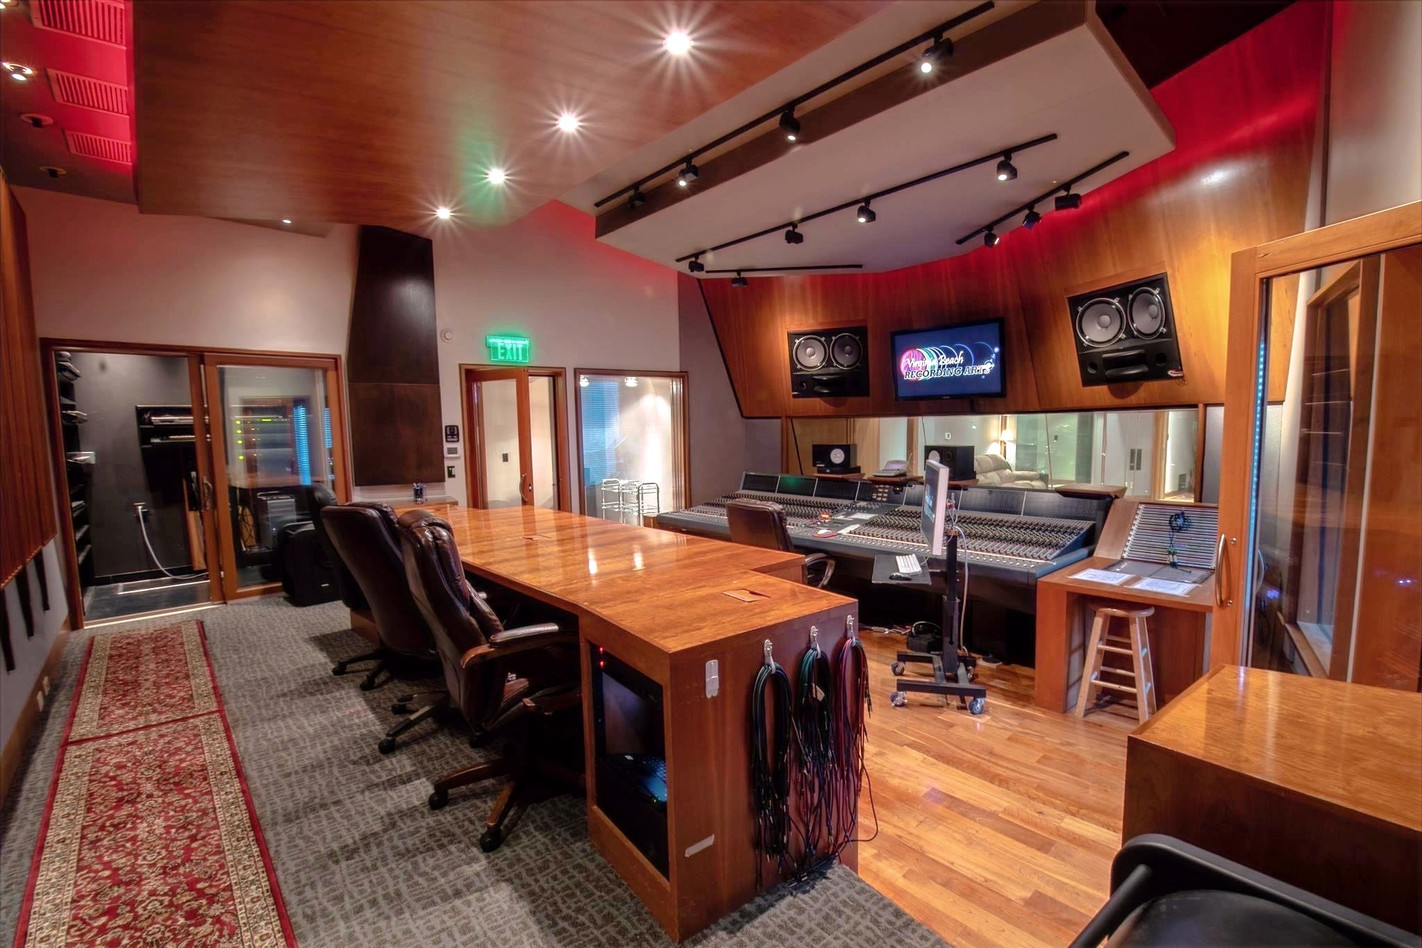 Virginia Beach Recording Arts Studio A Control Room 2